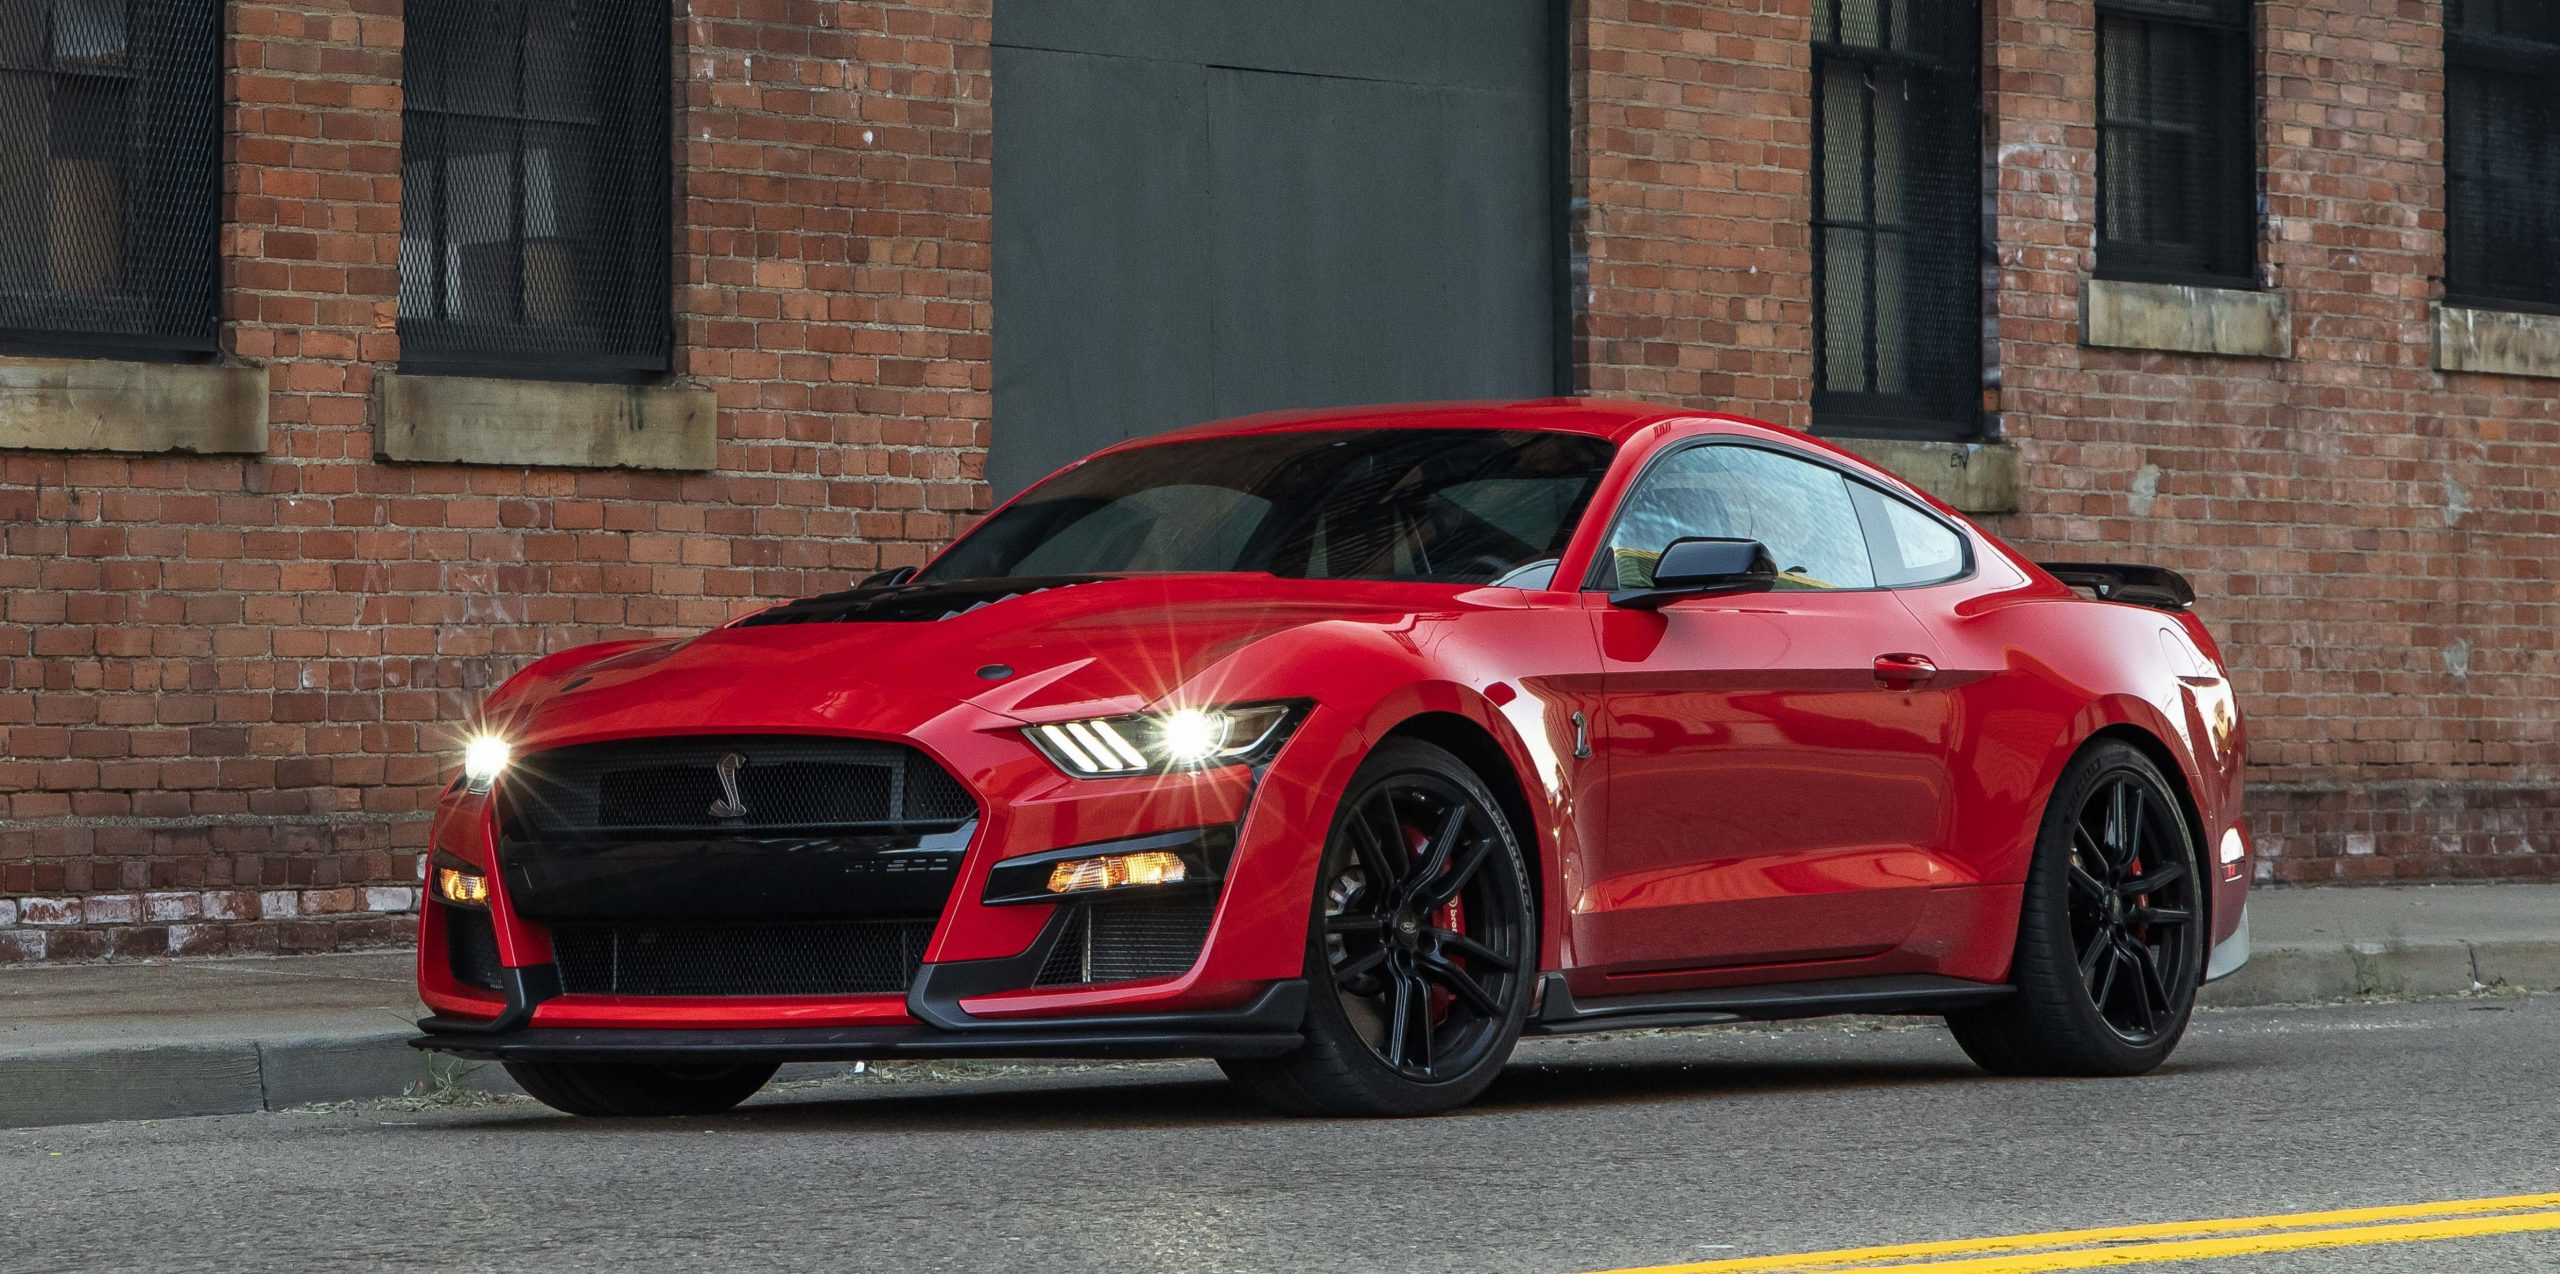 5 Ford Mustang Shelby GT5 Review, Pricing, and Specs - Ford Gt500 Specs 2021